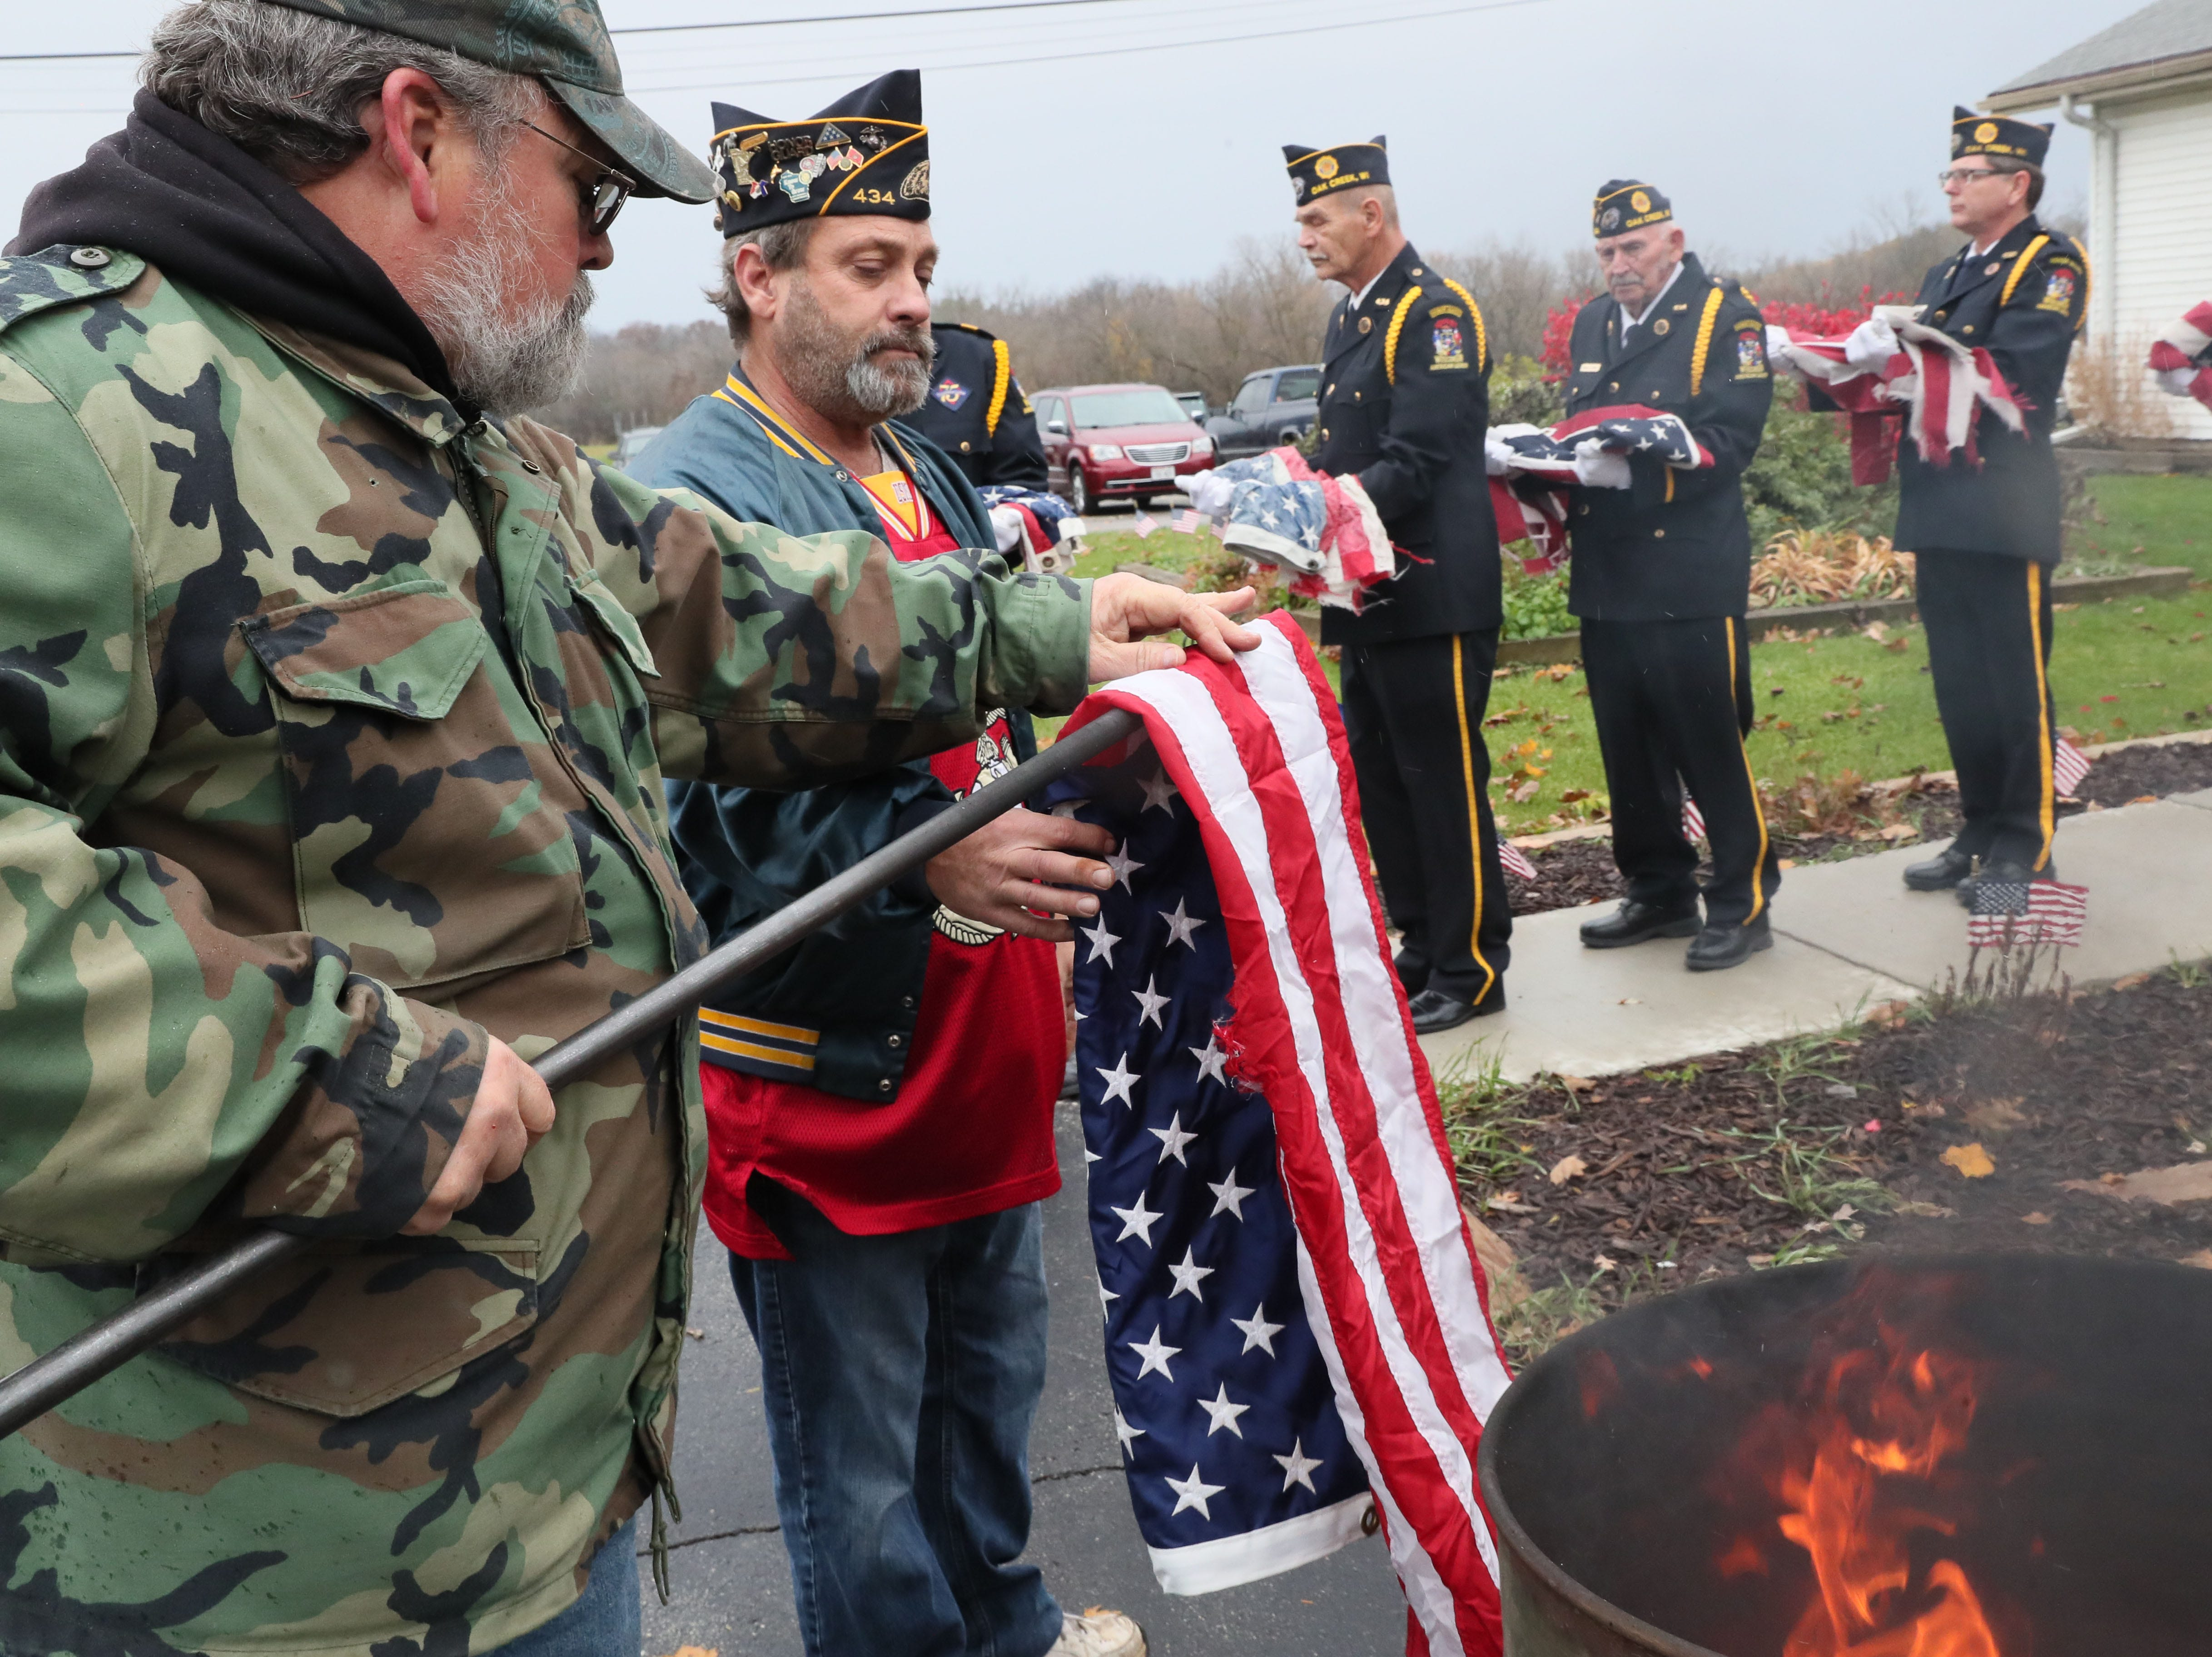 "Roger Jenson (left) takes flags from Second Vice Commander Scott Zalewski (center) to be placed in the burn barrel.  Other members of the honor guard wait at right with flags to be destroyed during a flag retirement ceremony at Oelschlaeger Dallmann American Legion Post 434 in Oak Creek on Sunday. It's an official way that American flags can be ""retired"" and destroyed."